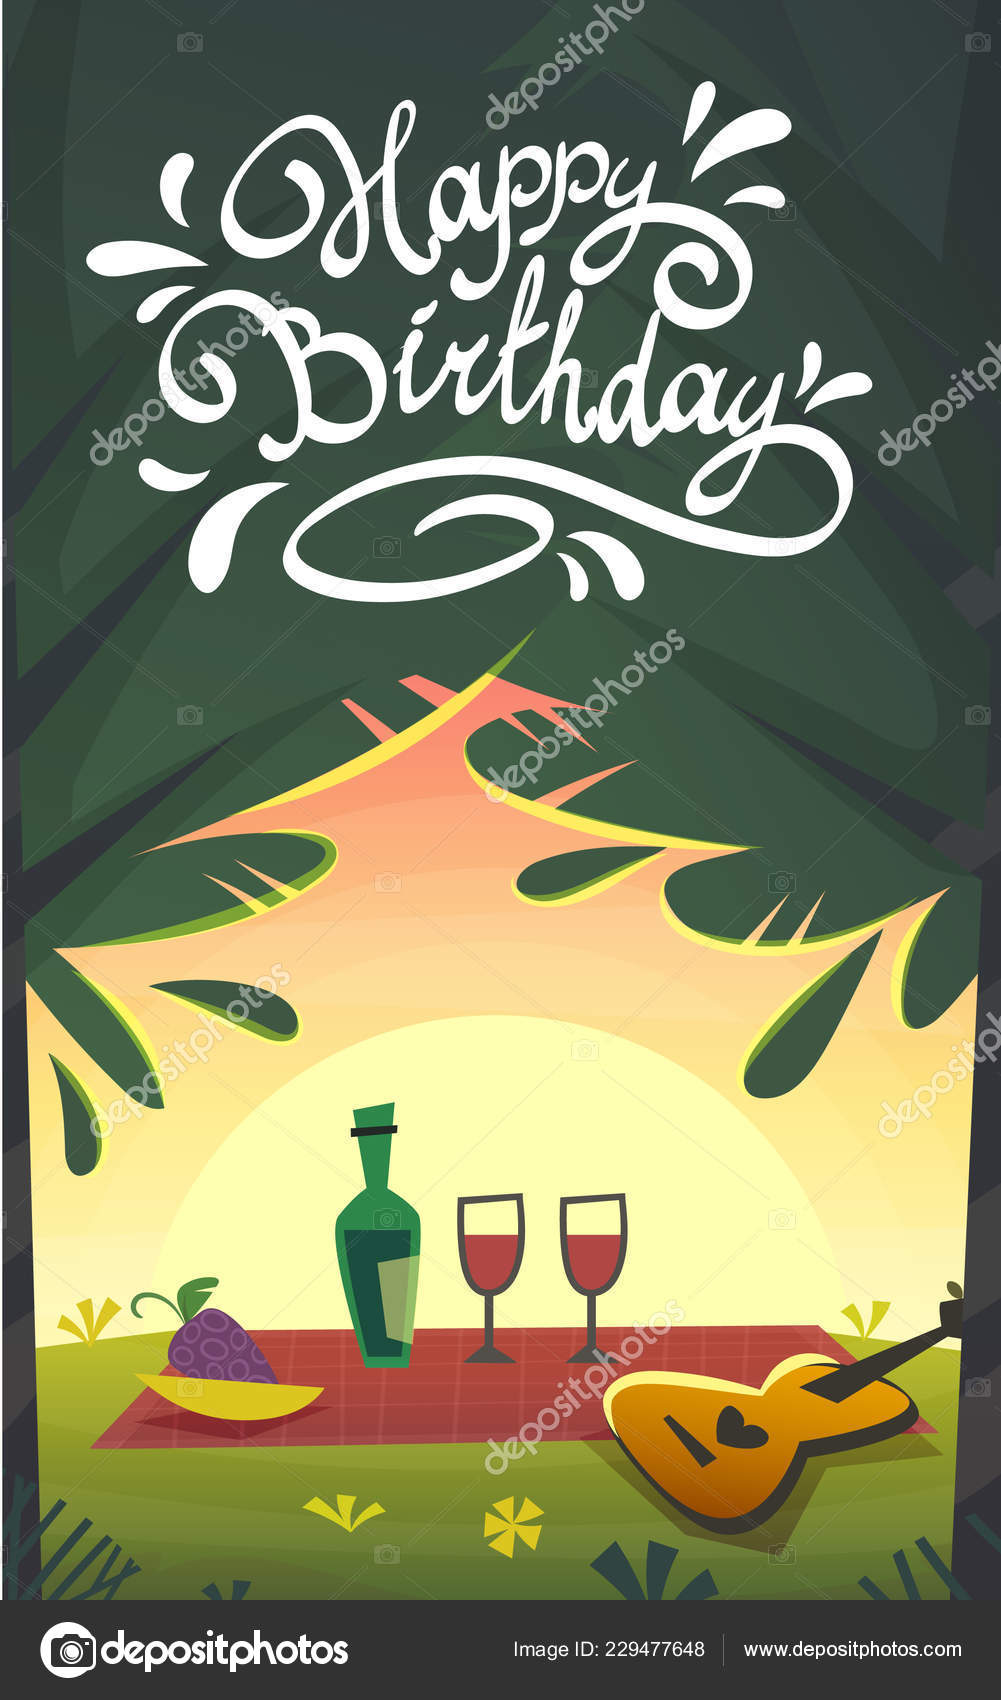 Happy Birthday Cartoon Funny Card Picnic Barbeque Celebration Bbq Nature Stock Vector